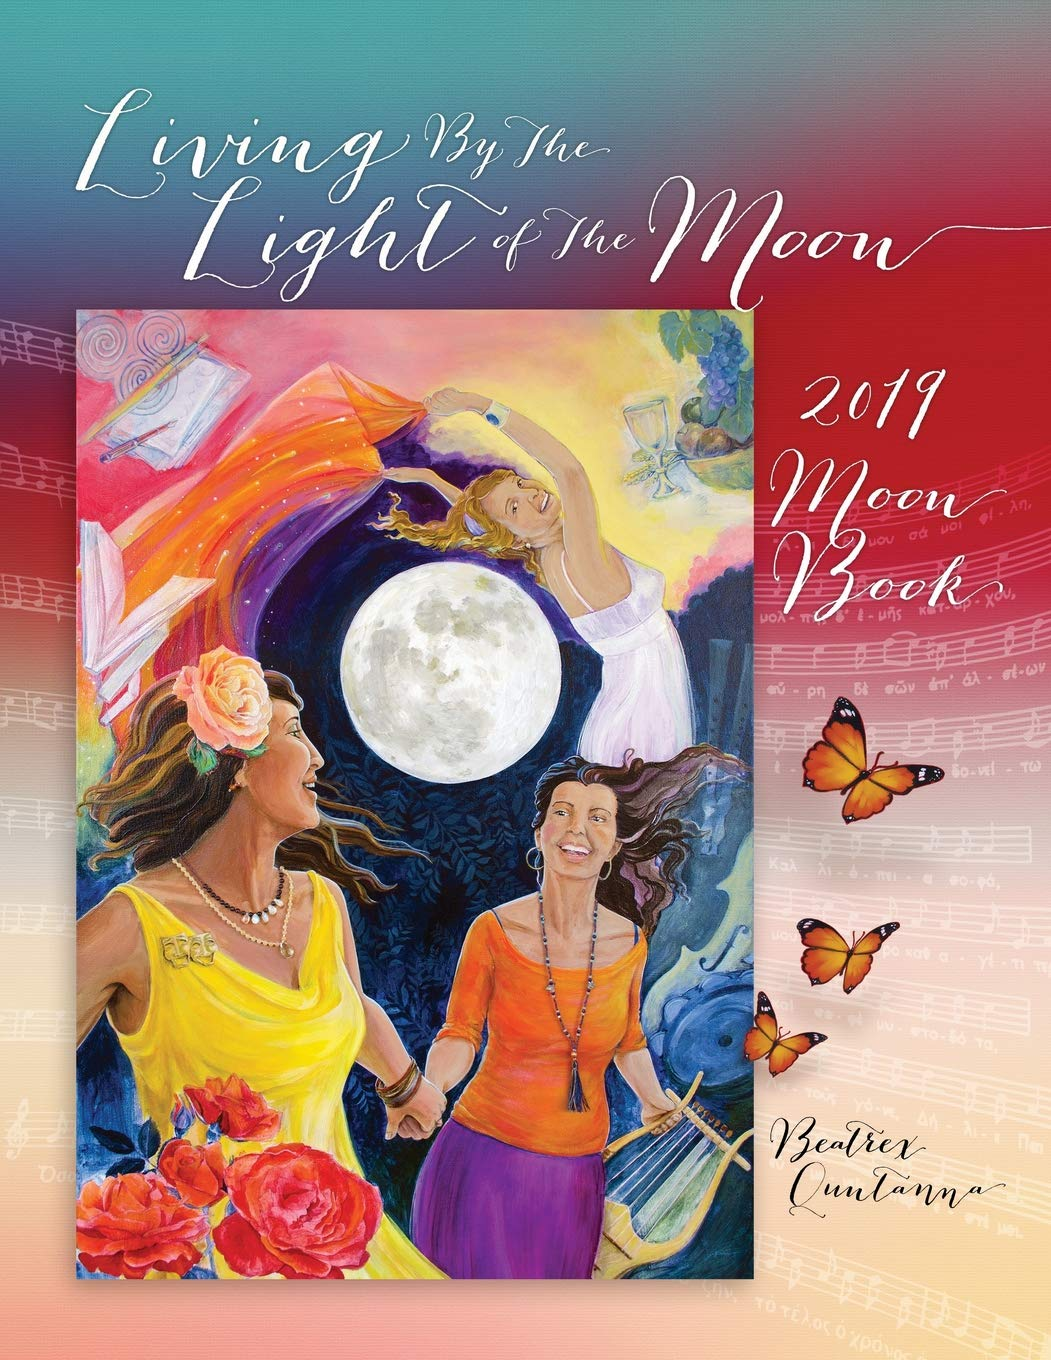 Living by the Light of the Moon: 2019 Moon Book by Beatrex Quntanna